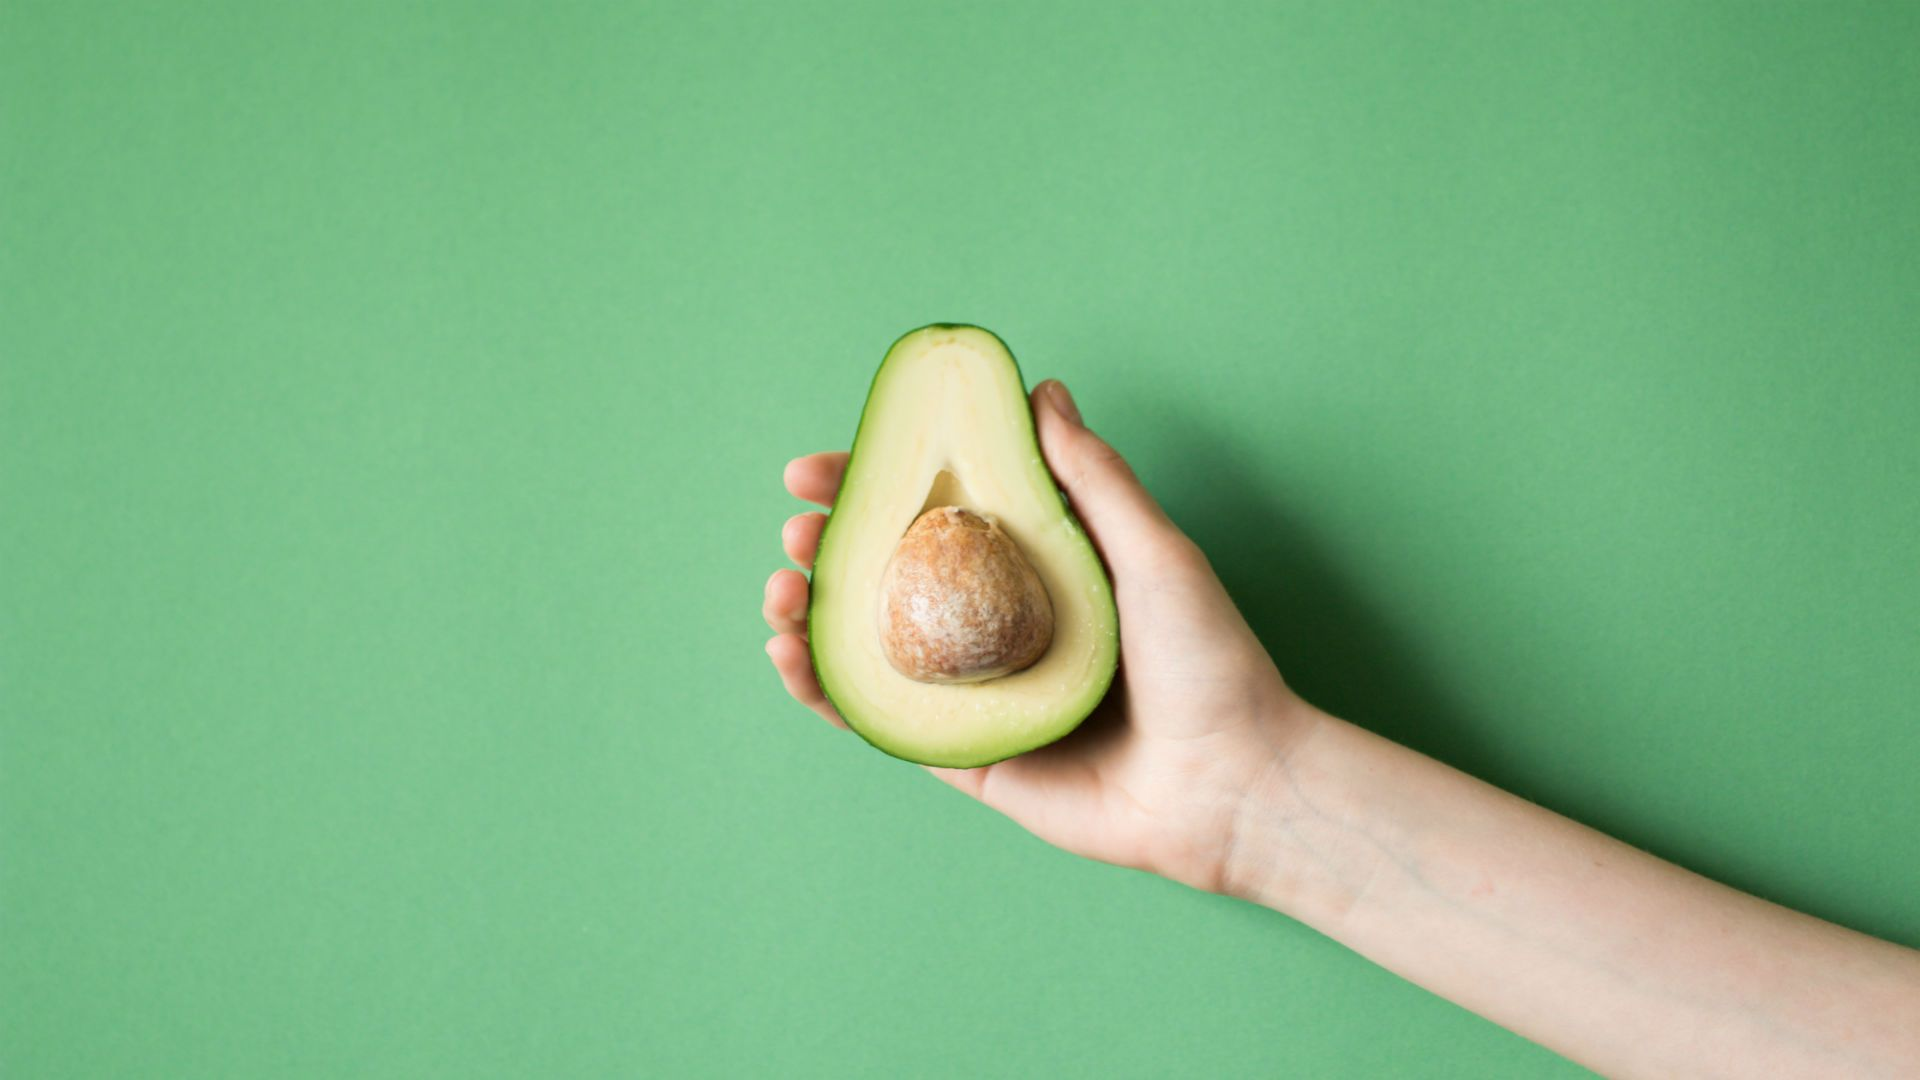 Avocado download free wallpaper image search